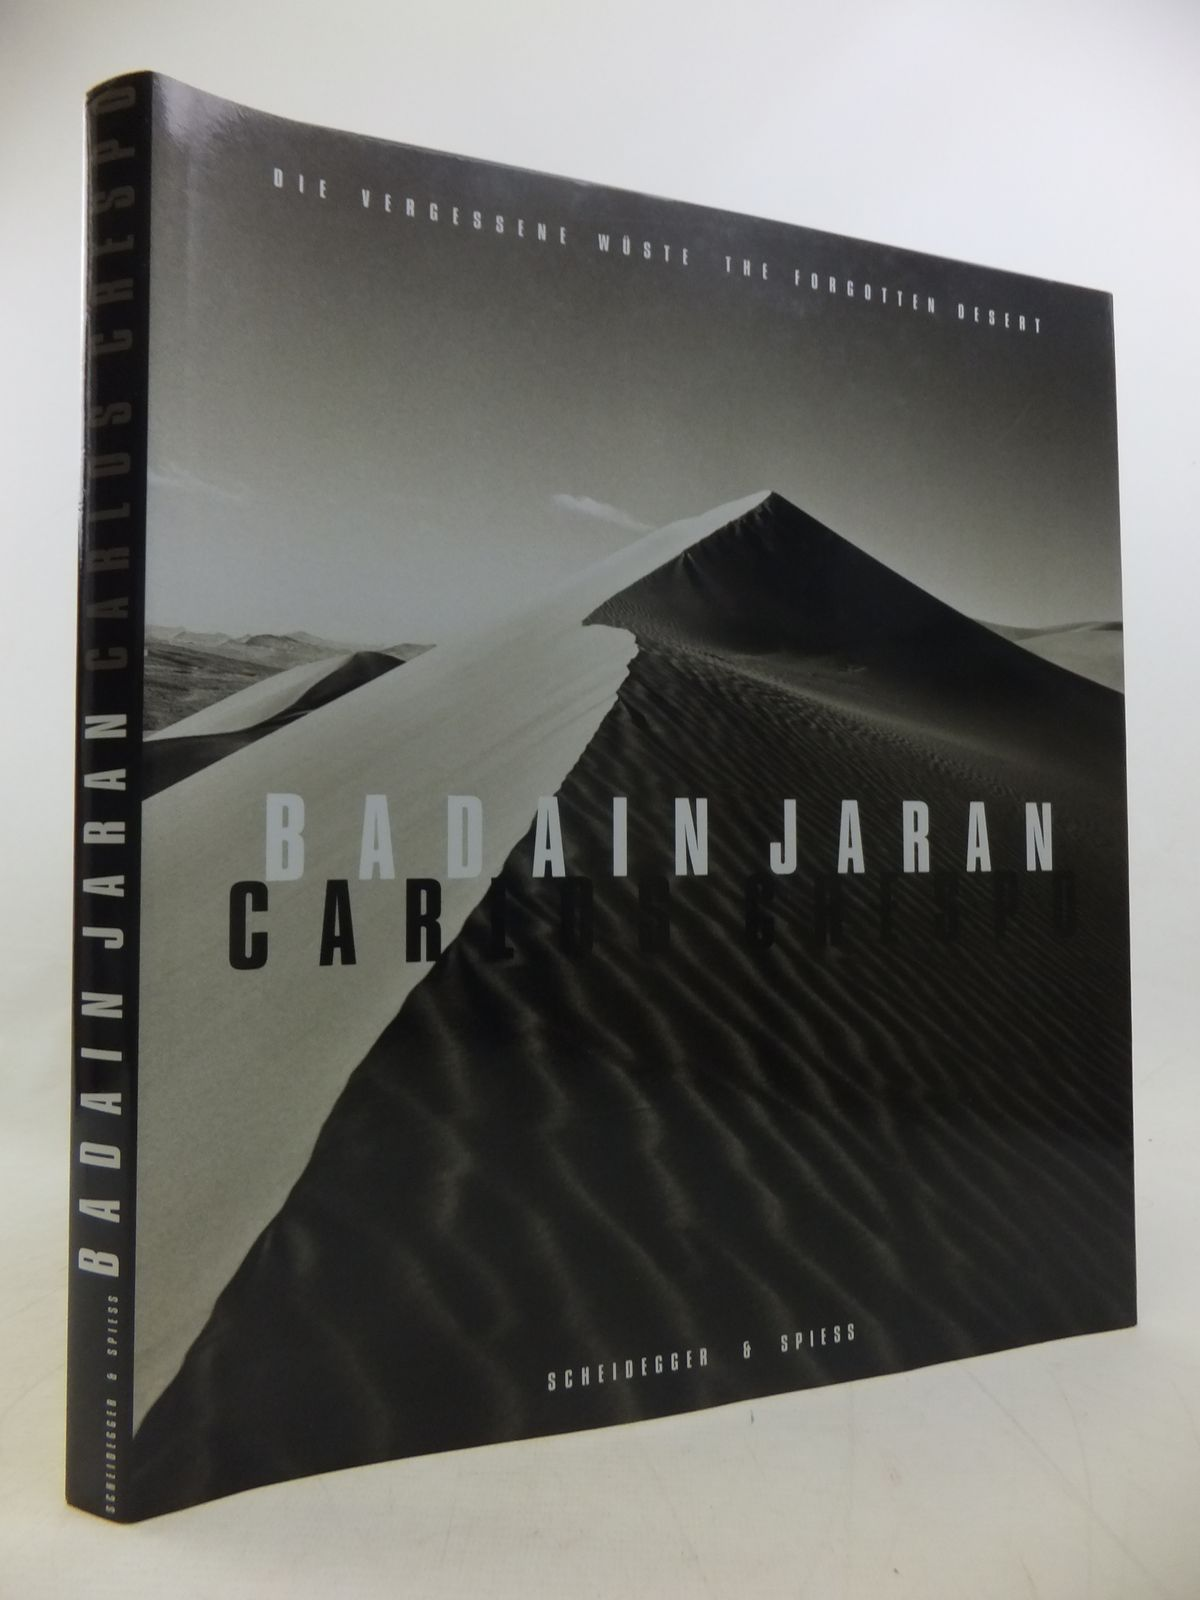 Photo of BADAIN JARAN: THE FORGOTTEN DESERT: DIE VERGESSENE WUSTE written by Hug, Catherine<br />Kouwenhoven, Bill illustrated by Crespo, Luis Fresnocarlos published by Scheidegger & Spiess (STOCK CODE: 1811246)  for sale by Stella & Rose's Books